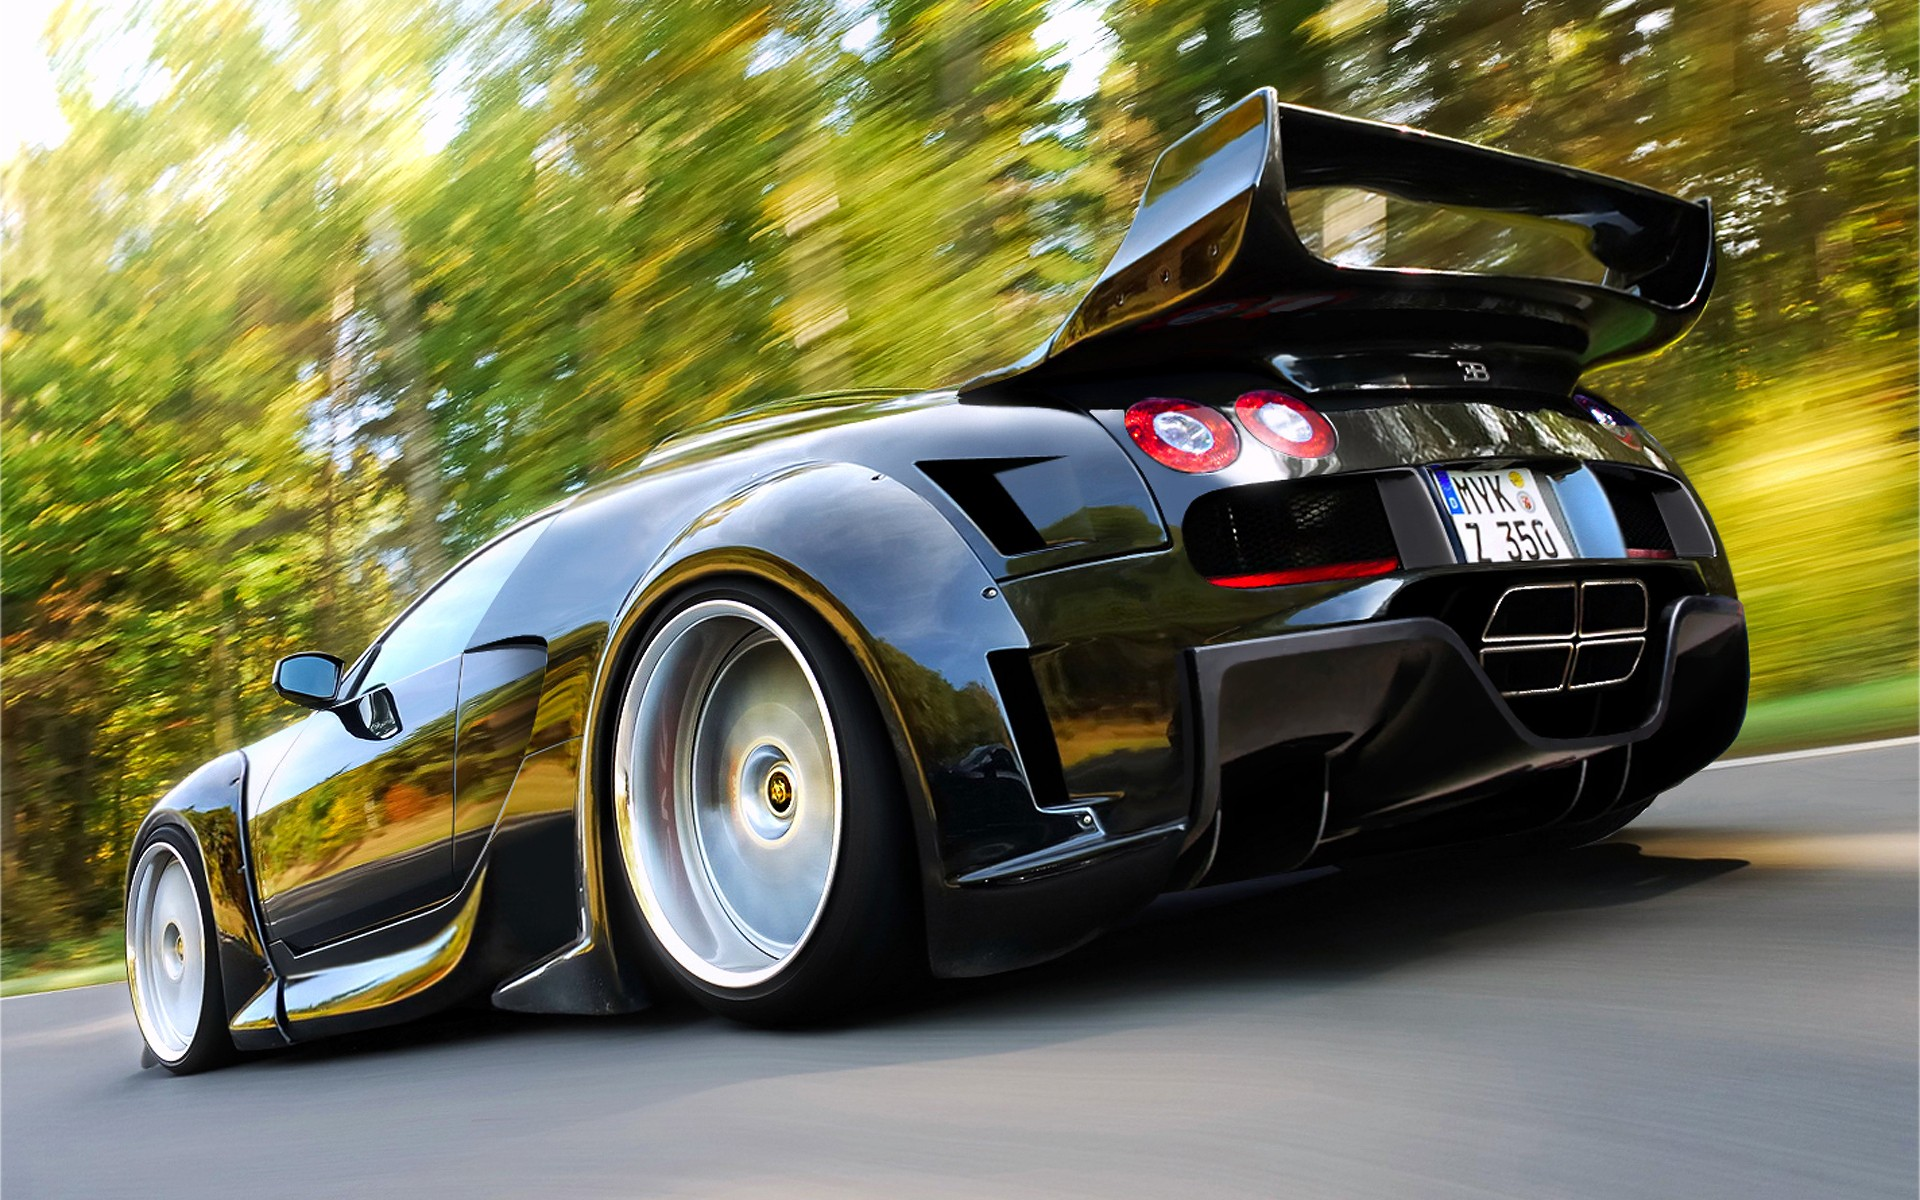 cars bugatti veyron vehicles supercars black cars low angle shot wallpaper 1920x1200 8914. Black Bedroom Furniture Sets. Home Design Ideas